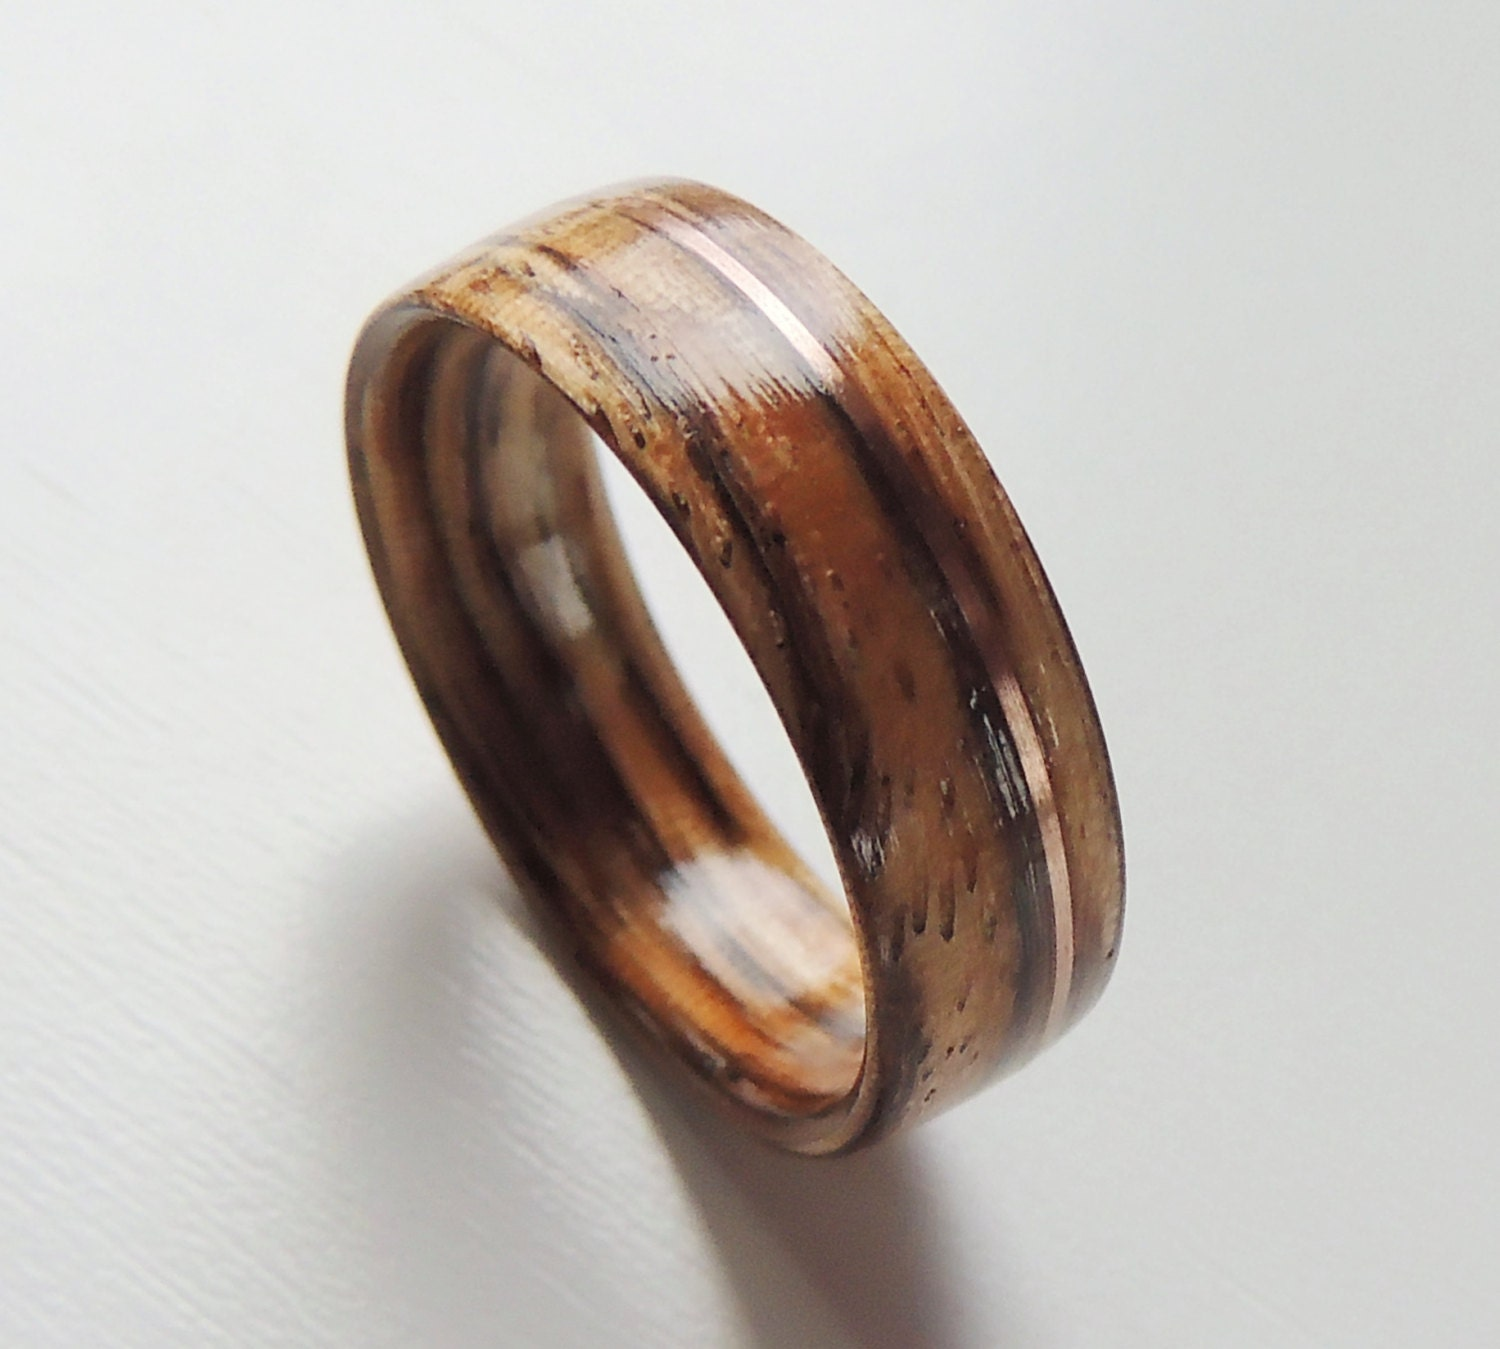 Bentwood Ring Zebrawood And Rose Gold Wood Wedding Band. Demon Rings. Classic Cut Diamond Engagement Rings. Matte Yellow Gold Engagement Rings. Zuni Rings. Third Eye Rings. Price Tag Wedding Rings. Matrimony Wedding Rings. Meteorite Wedding Rings